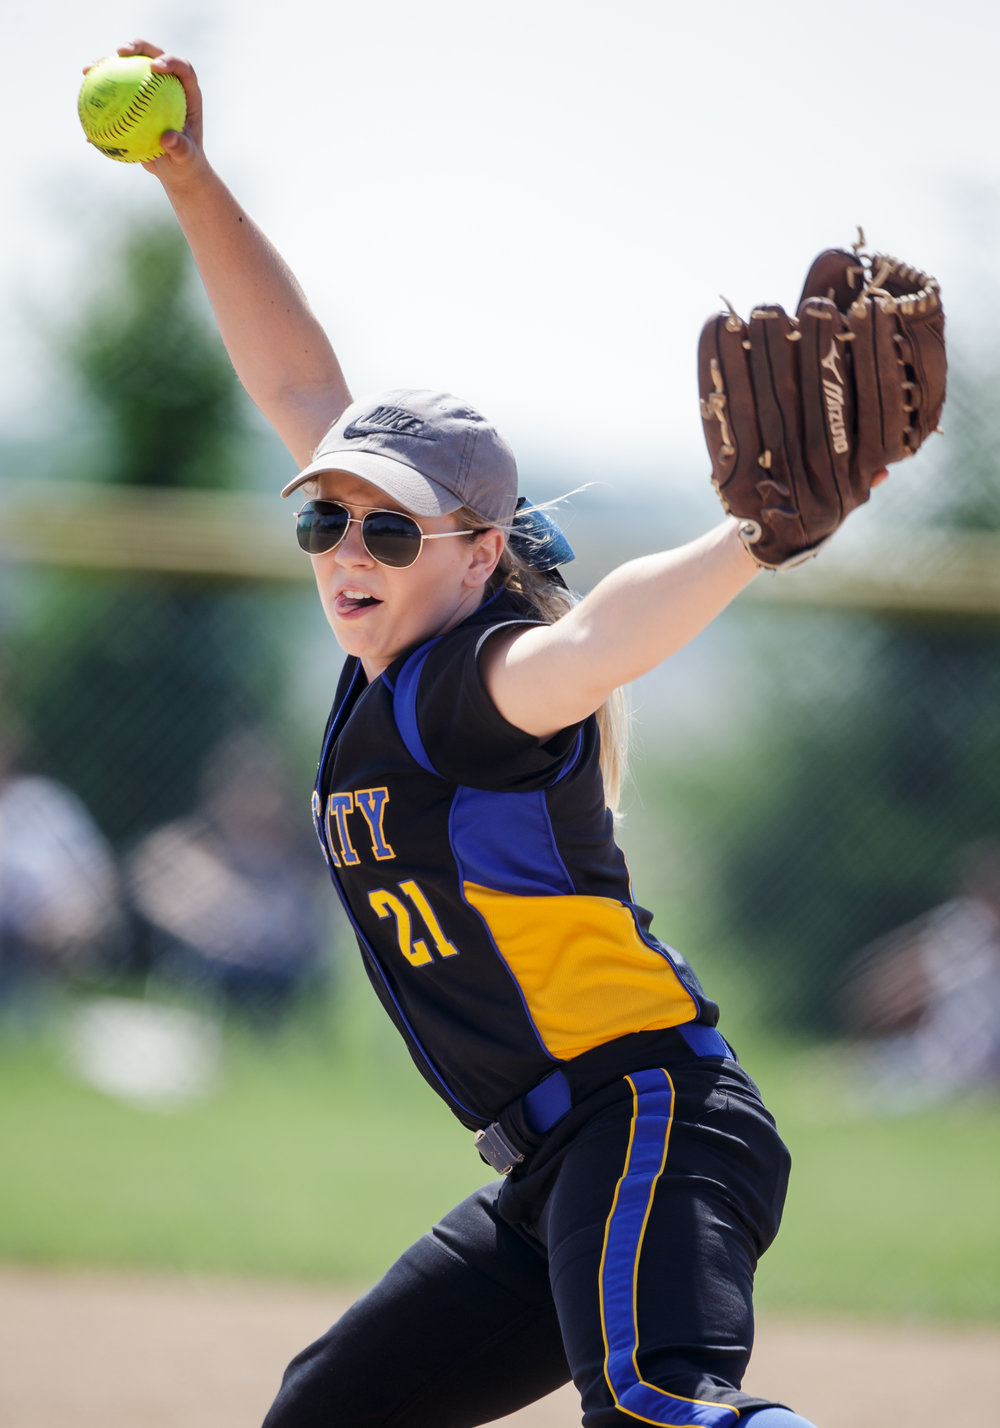 Tri-City's Payton Sturdy (21) delivers a pitch against Williamsville in the first inning during the Class 2A Williamsville Sectional Championship game at Jane Grebner Field, Saturday, May 27, 2017, in Williamsville, Ill. [Justin L. Fowler/The State Journal-Register]